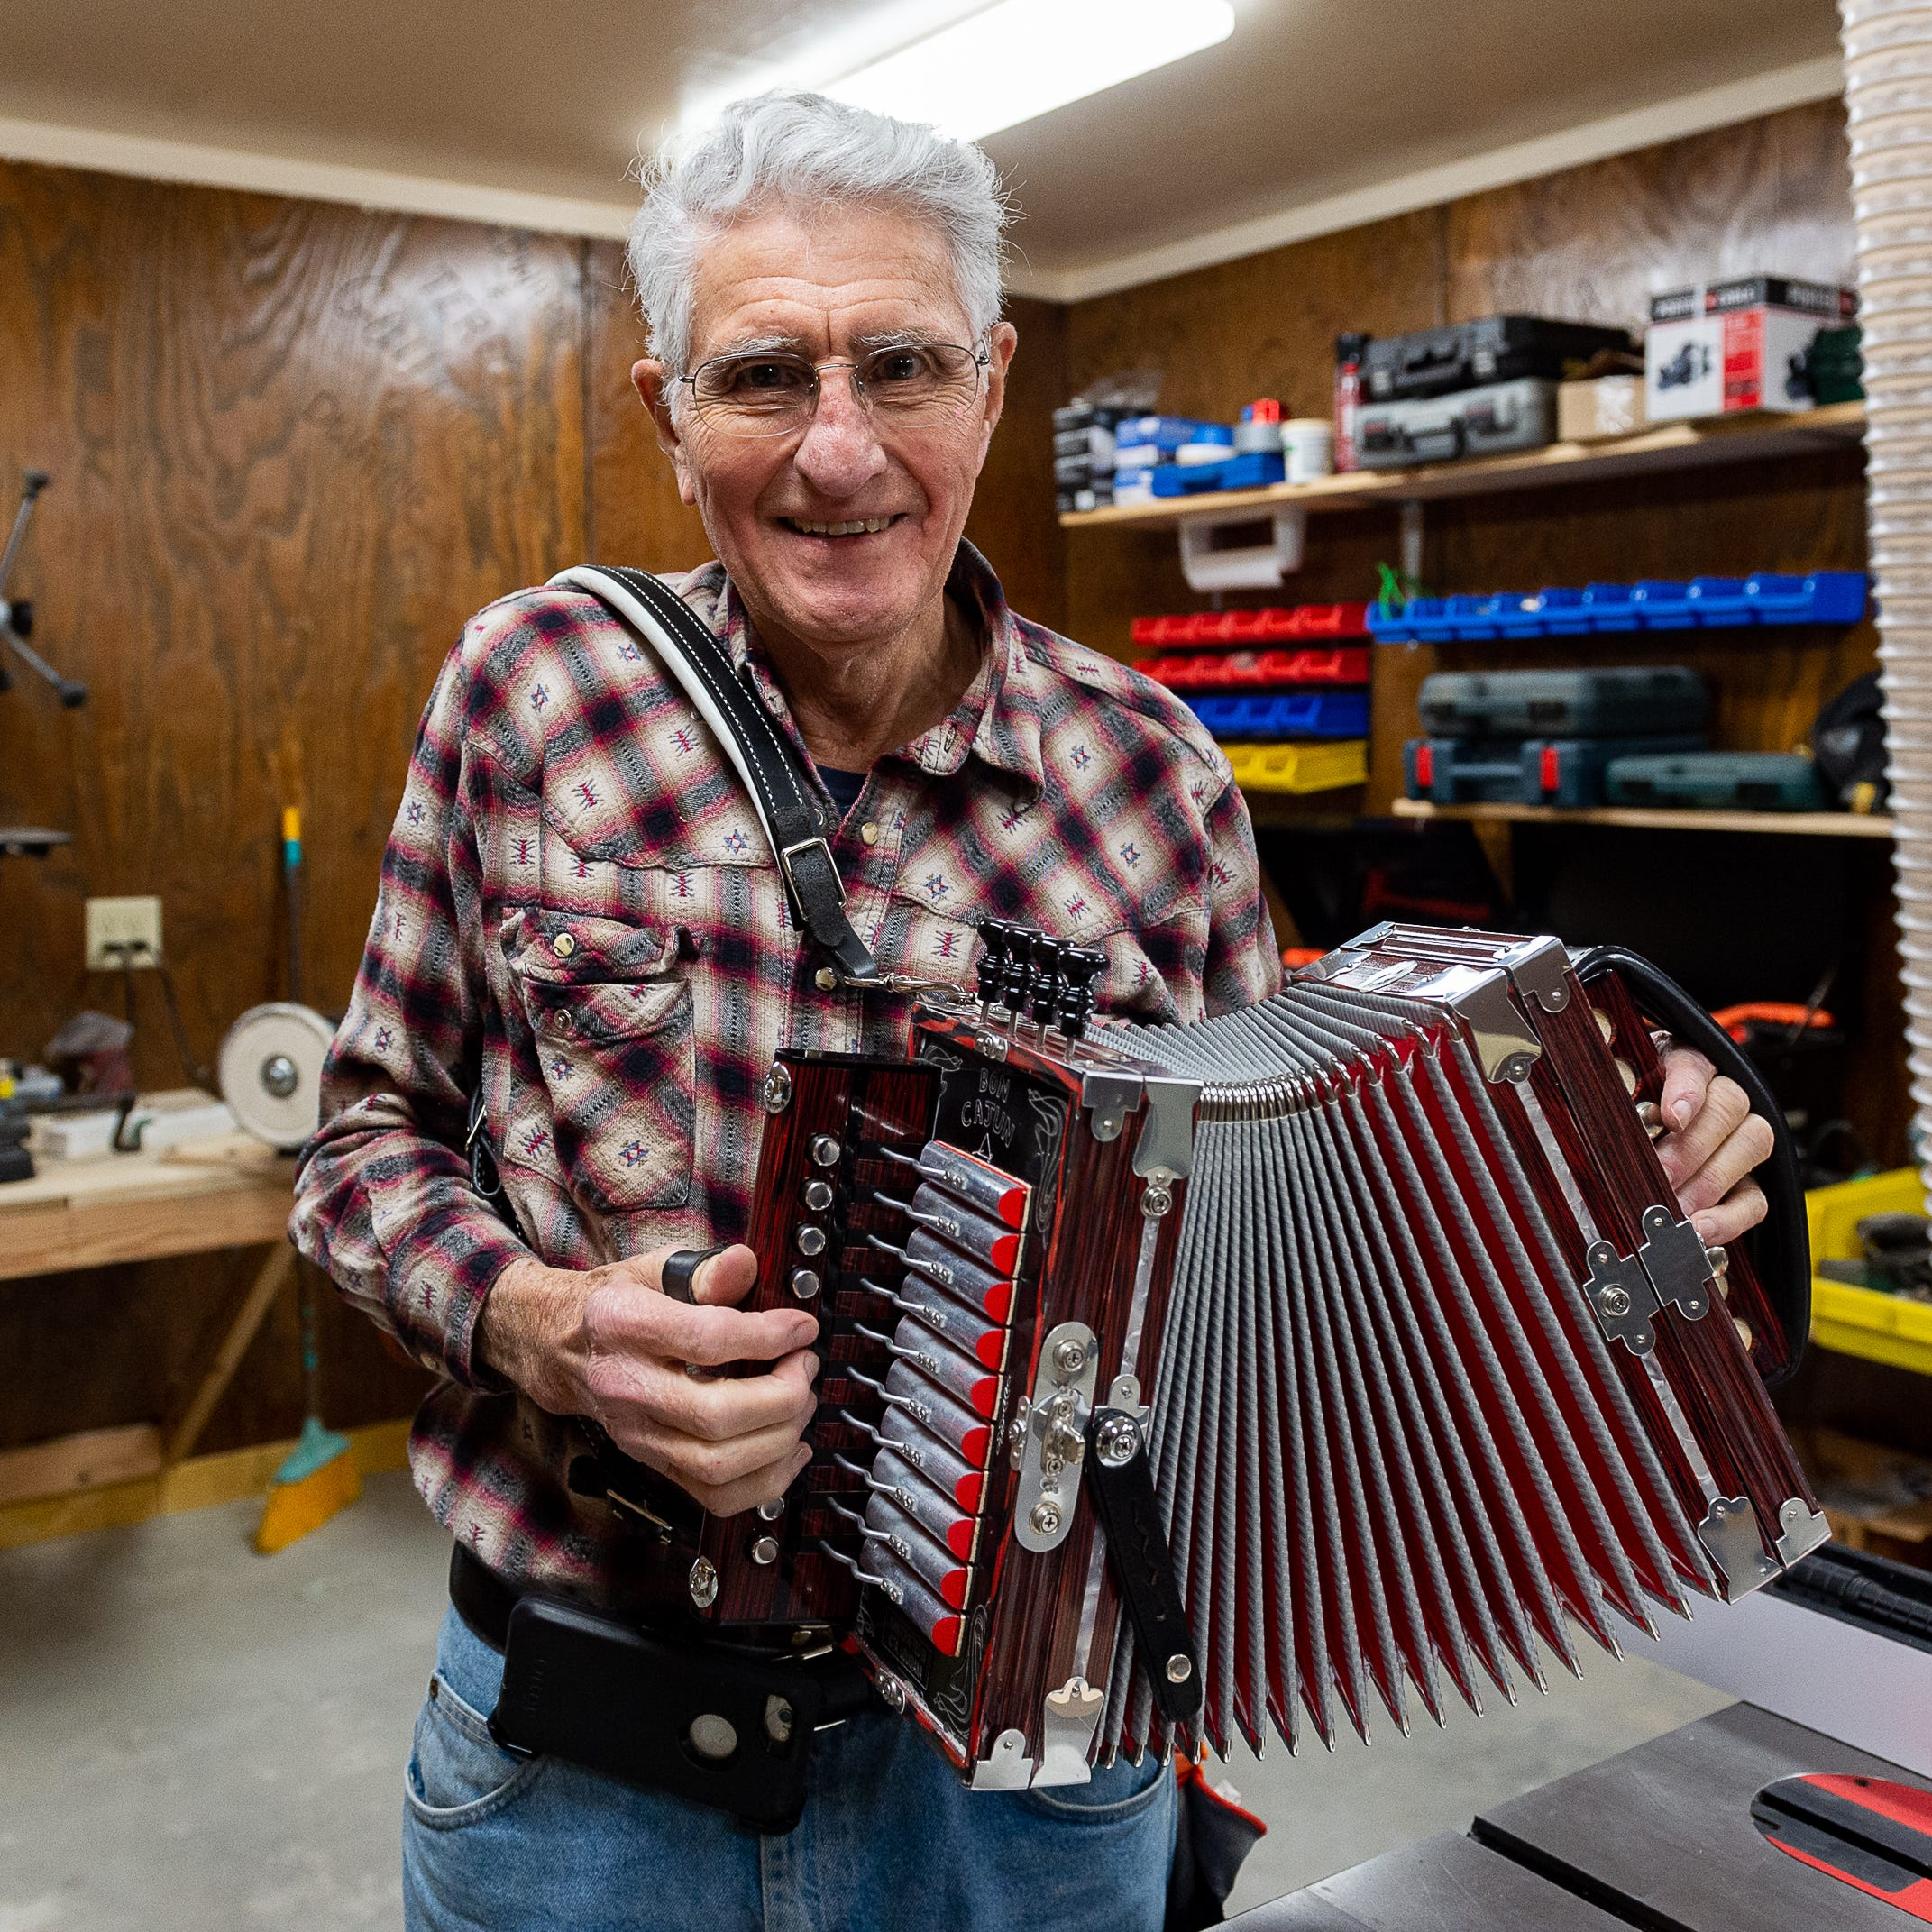 Accordion legend Larry Miller rebuilds shop using original Iota Mardi Gras dance floor